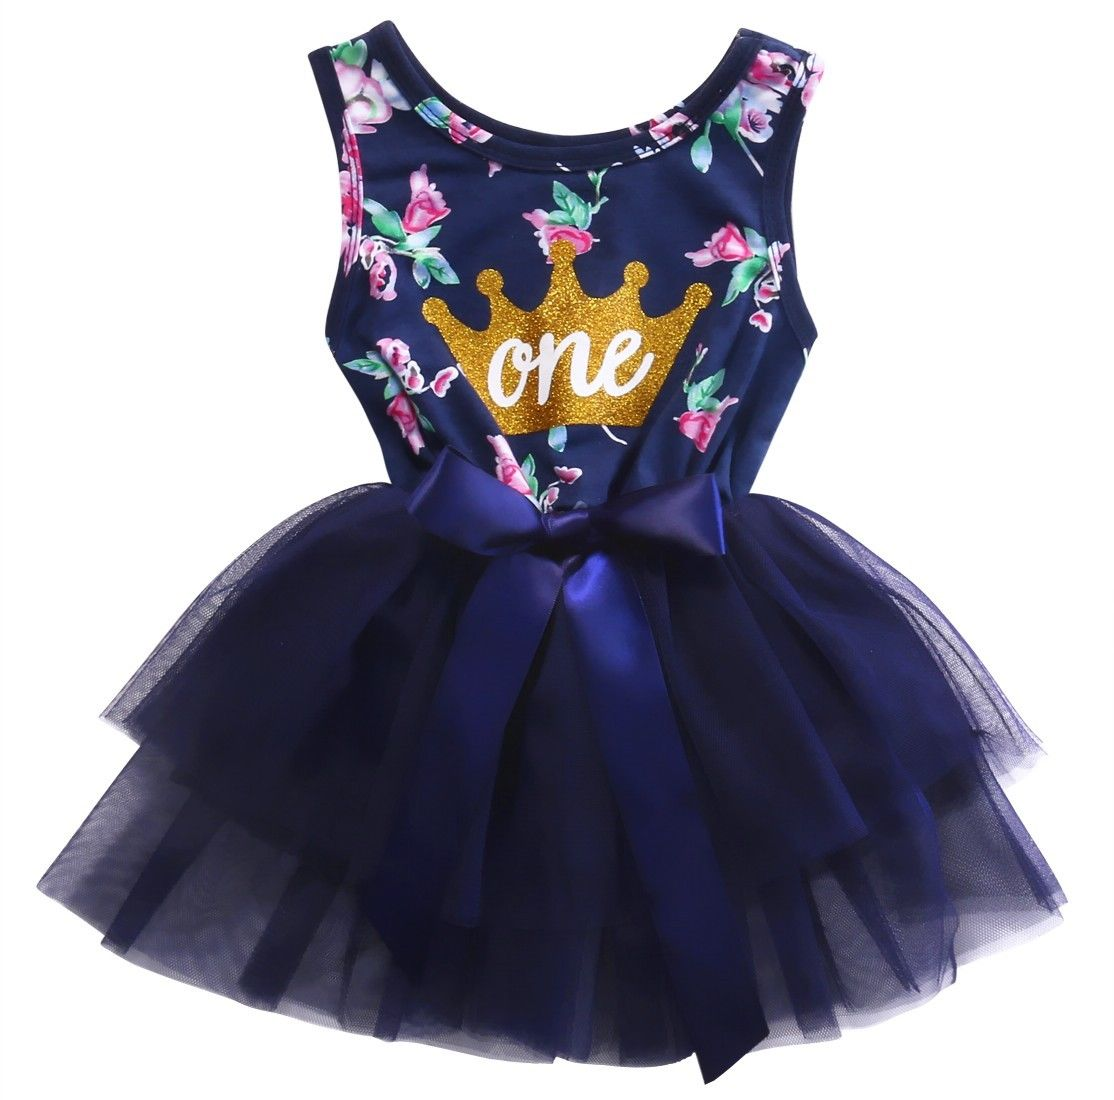 Newborn Baby Girls Sleeveless Princess Dresses Floral Crown One Print Sundress Summer Ruffle Lace Tulle Party Dress Clothes